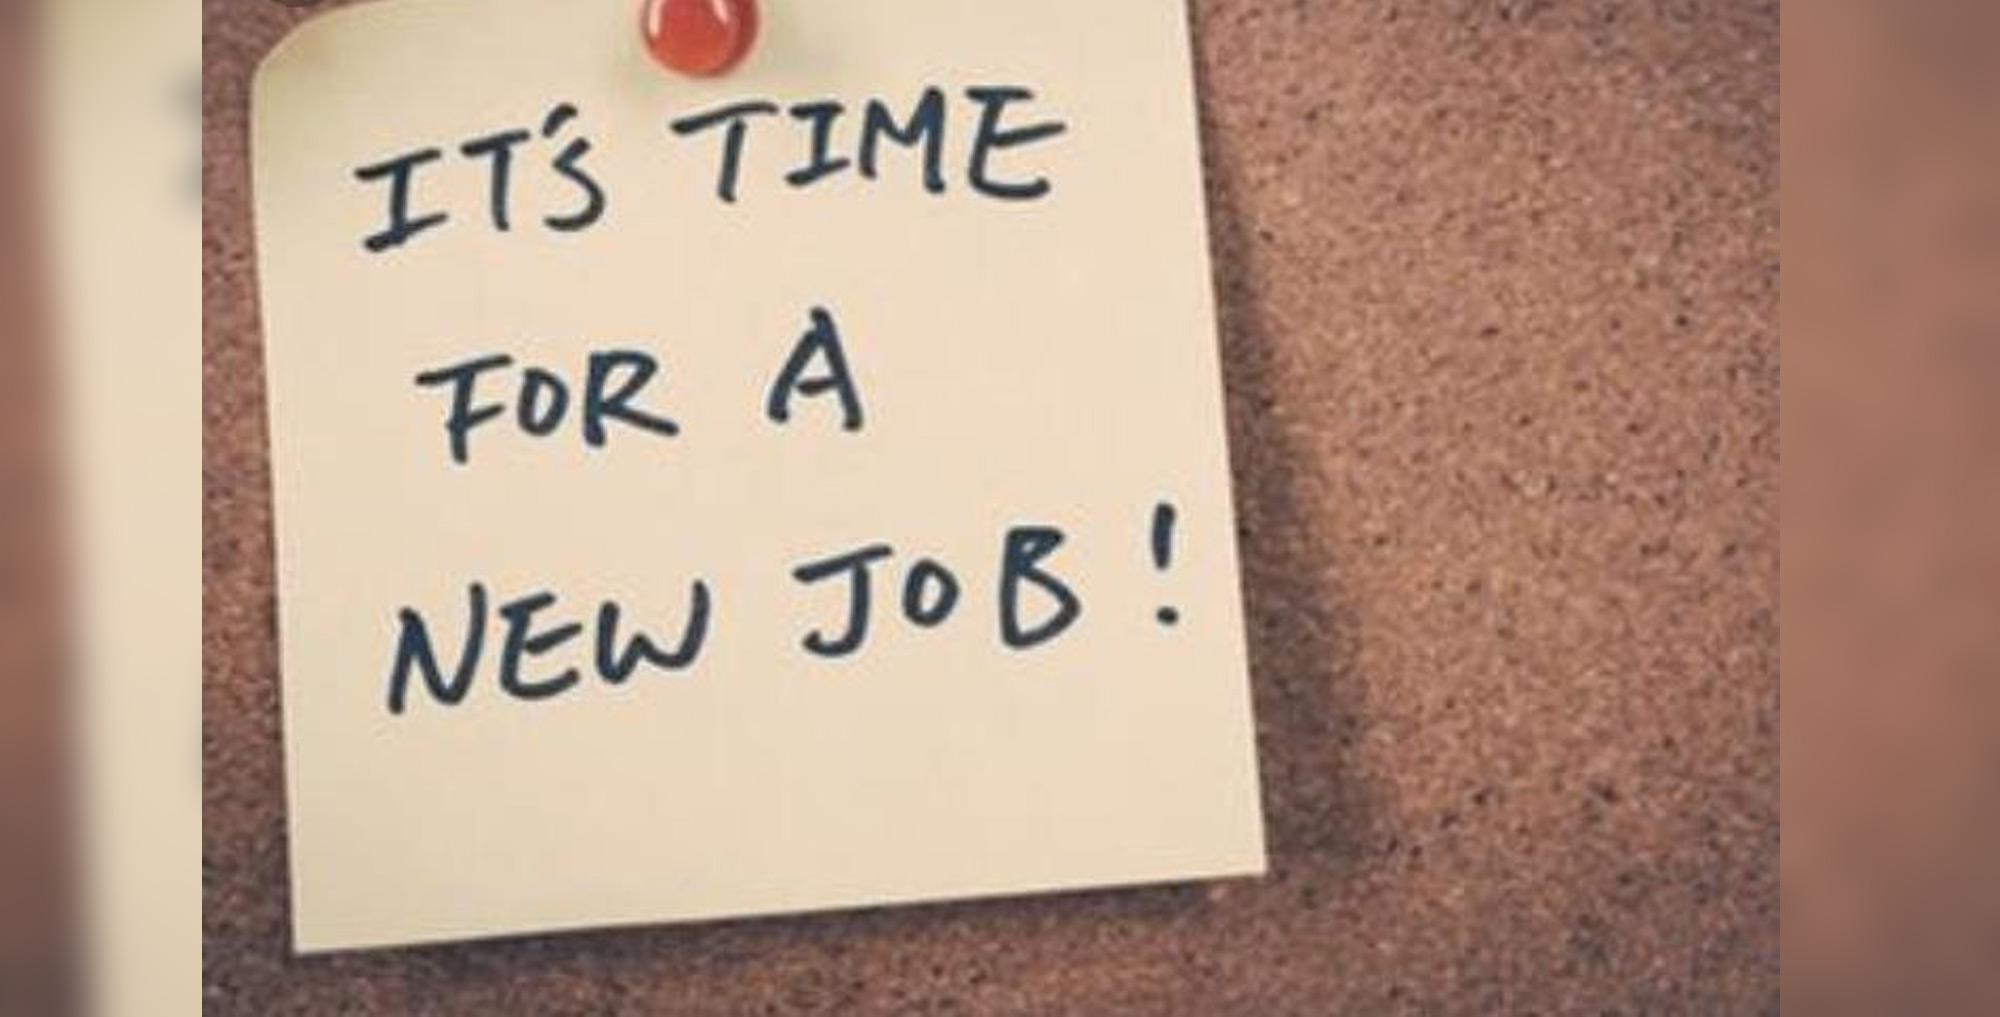 Time for a new job post-it note on cork board